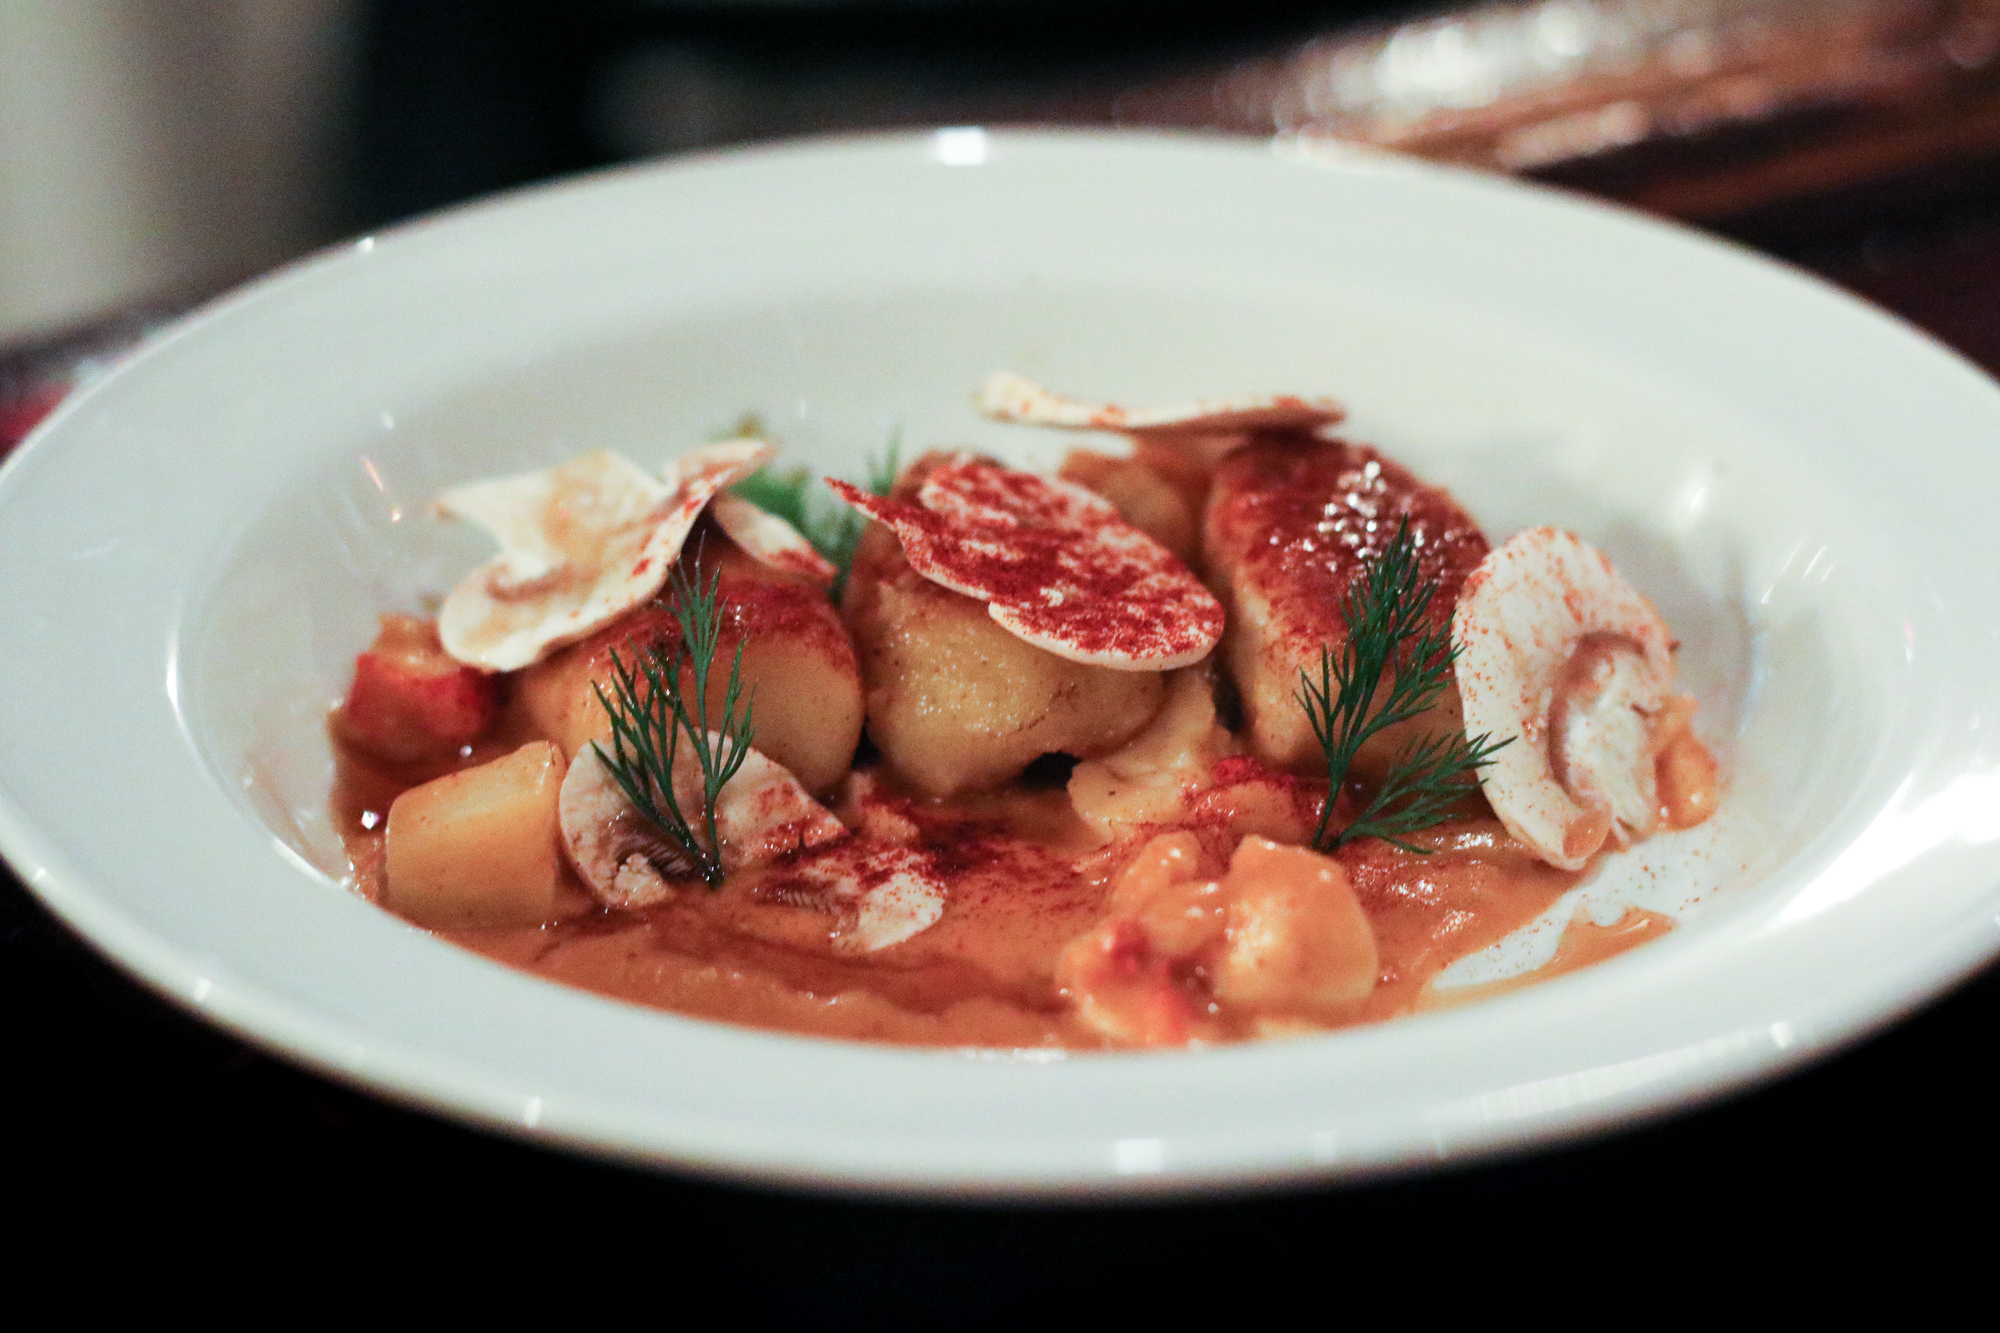 Lobster Newberg with topped with Buttermilk Dumplings, Fennel, and Paprika Bourbon Agrodolce